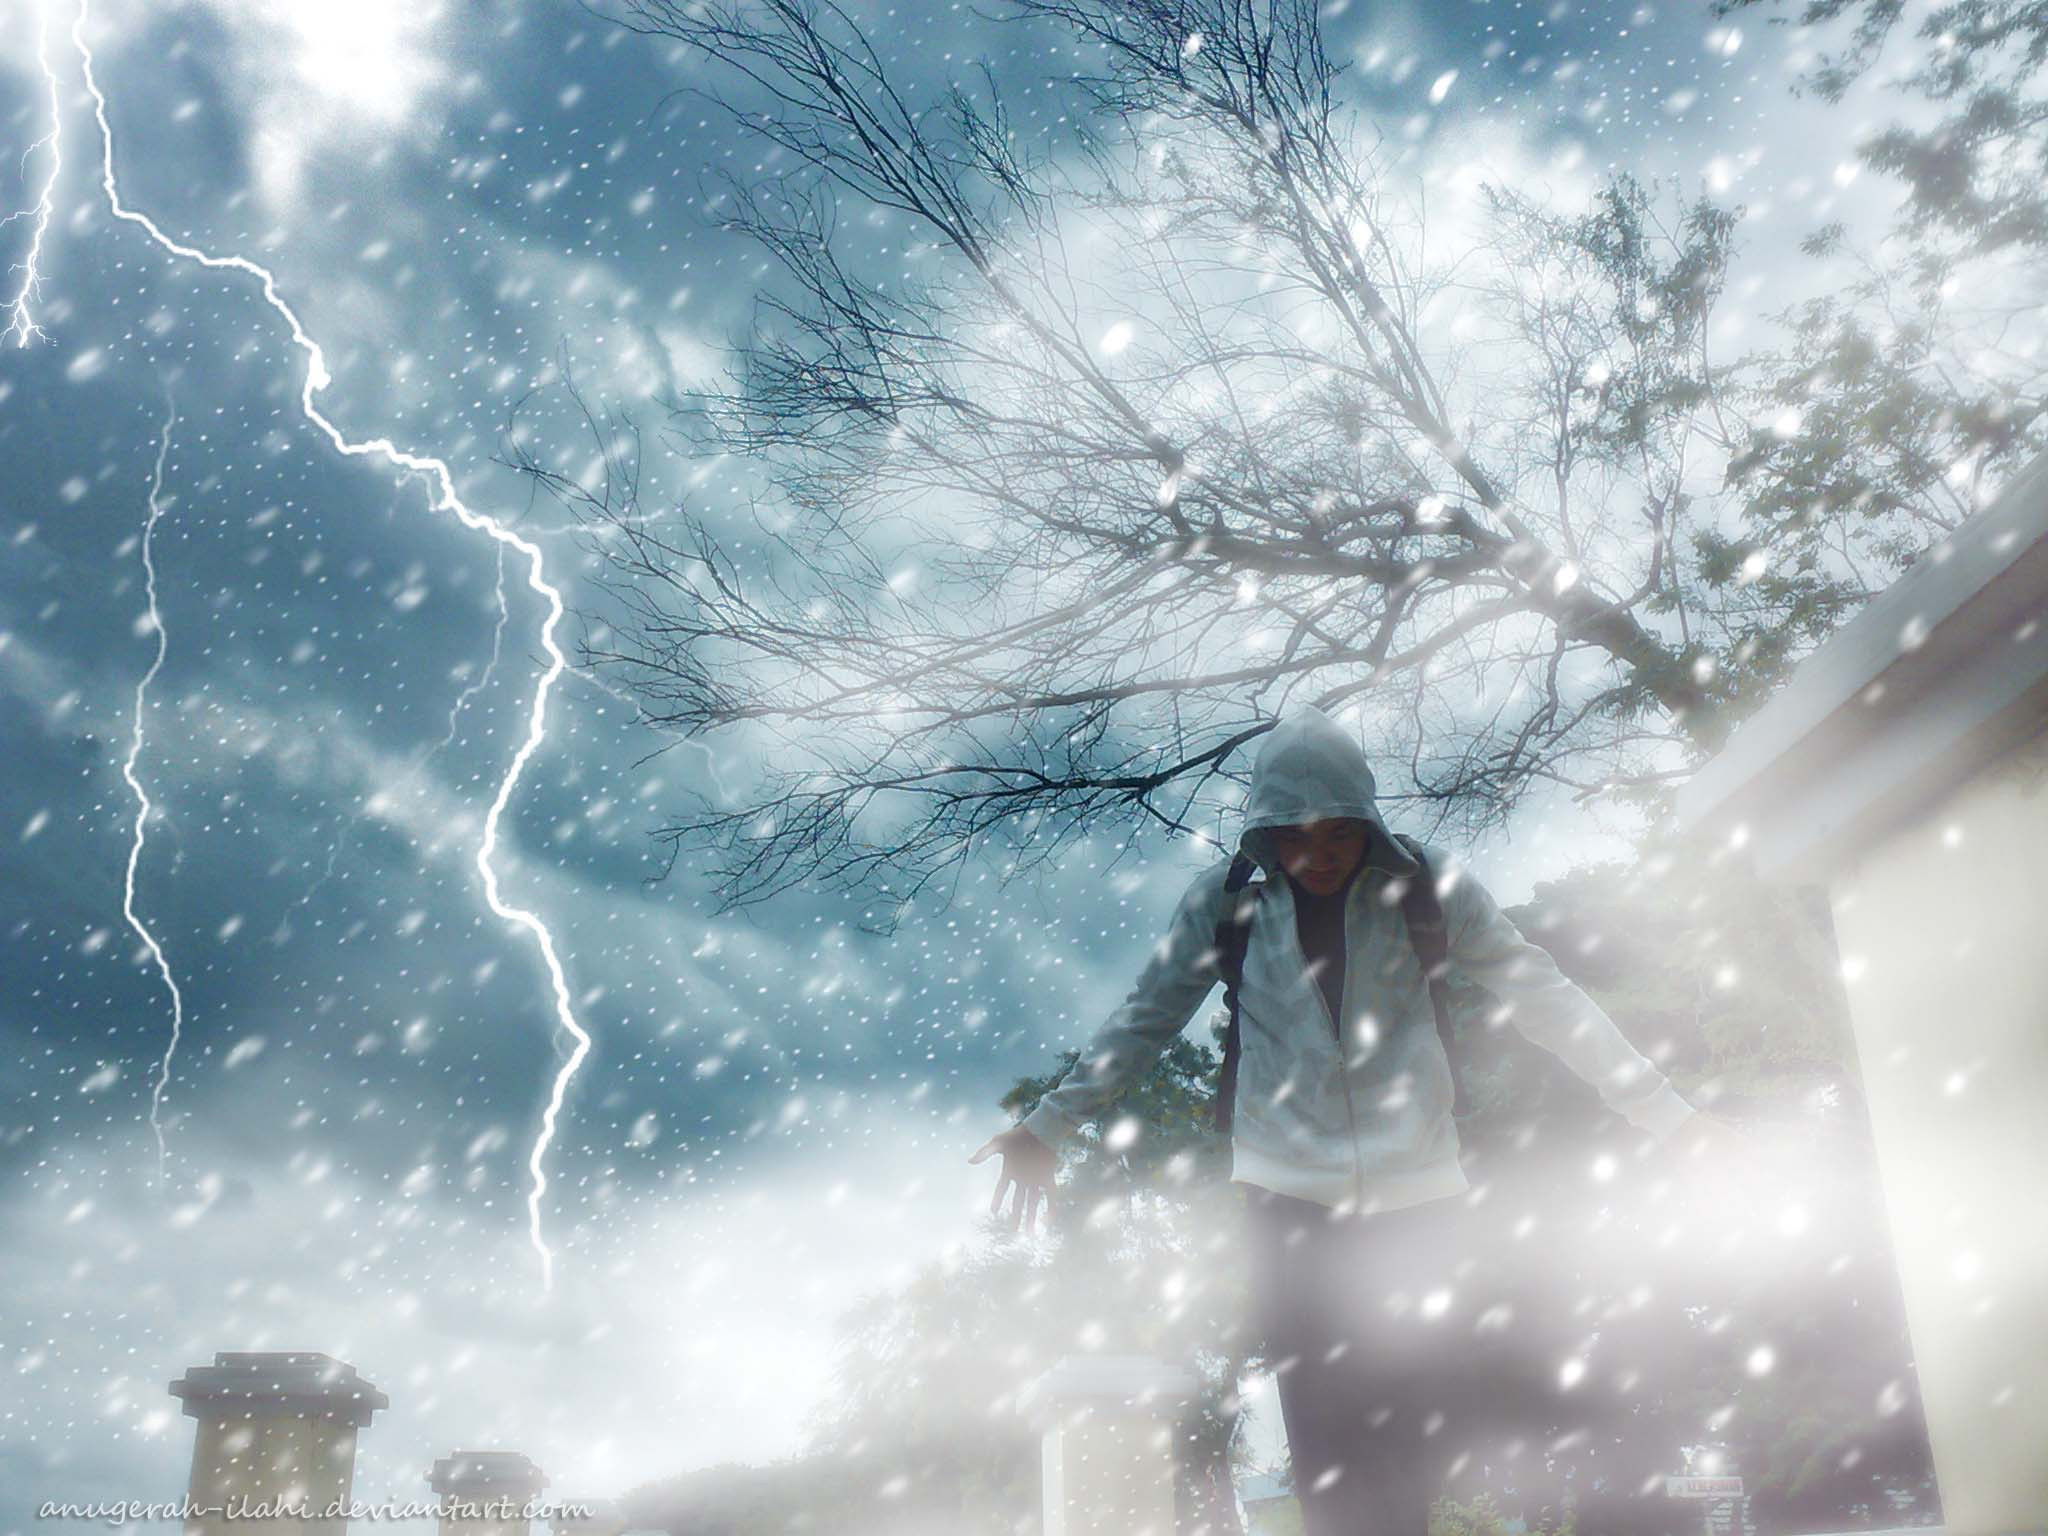 BREAKING NOW! HISTORIC THUNDER ICE SNOW STORM TO HIT IN 24 HOURS ...